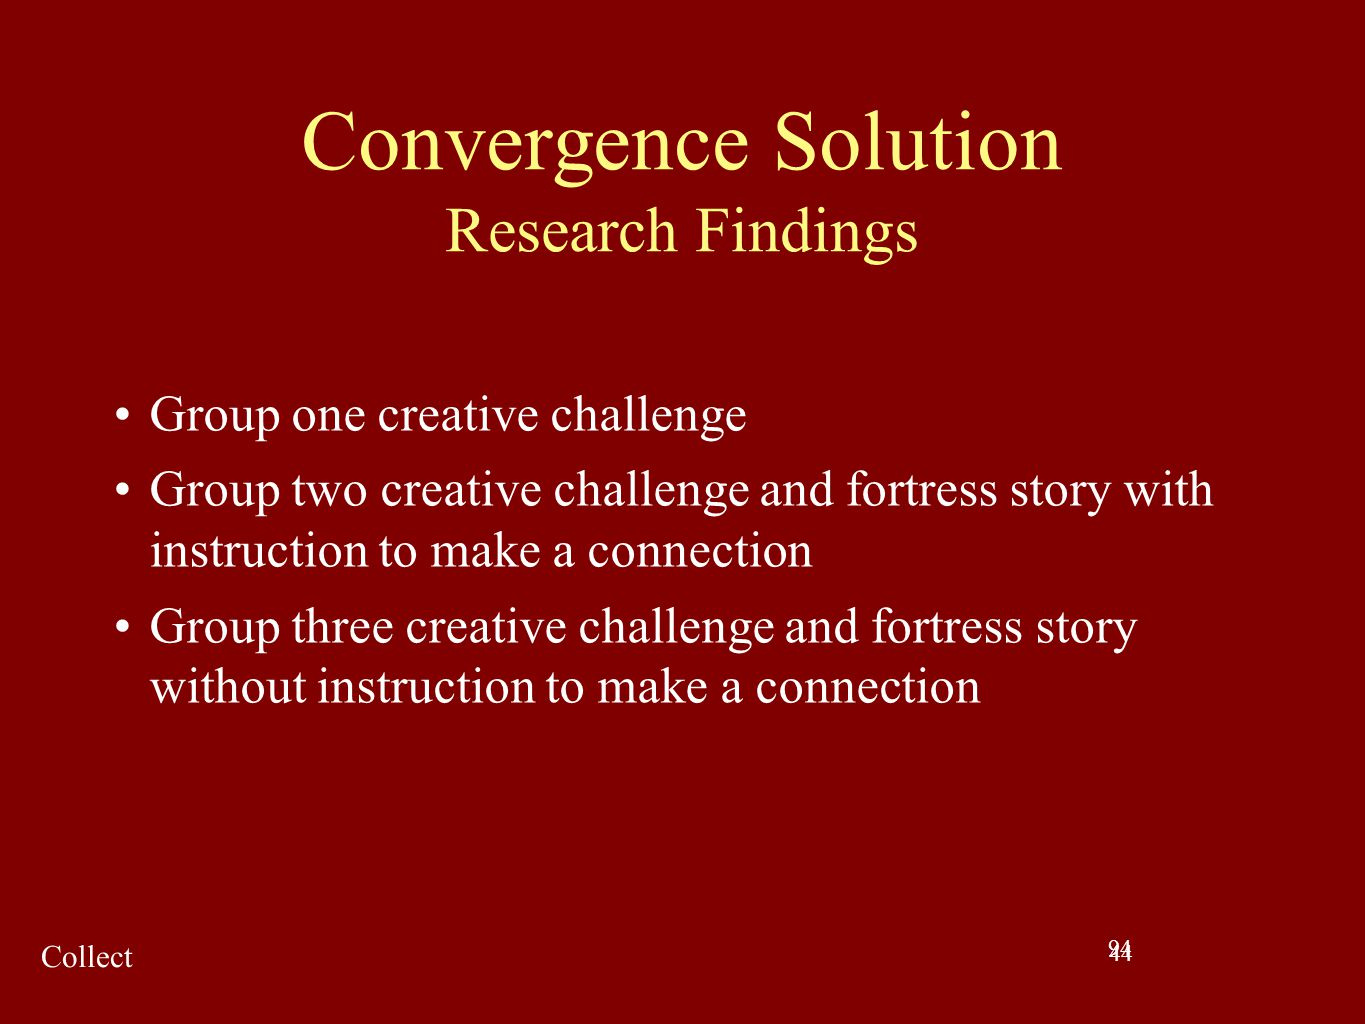 Convergence Solution Research Findings